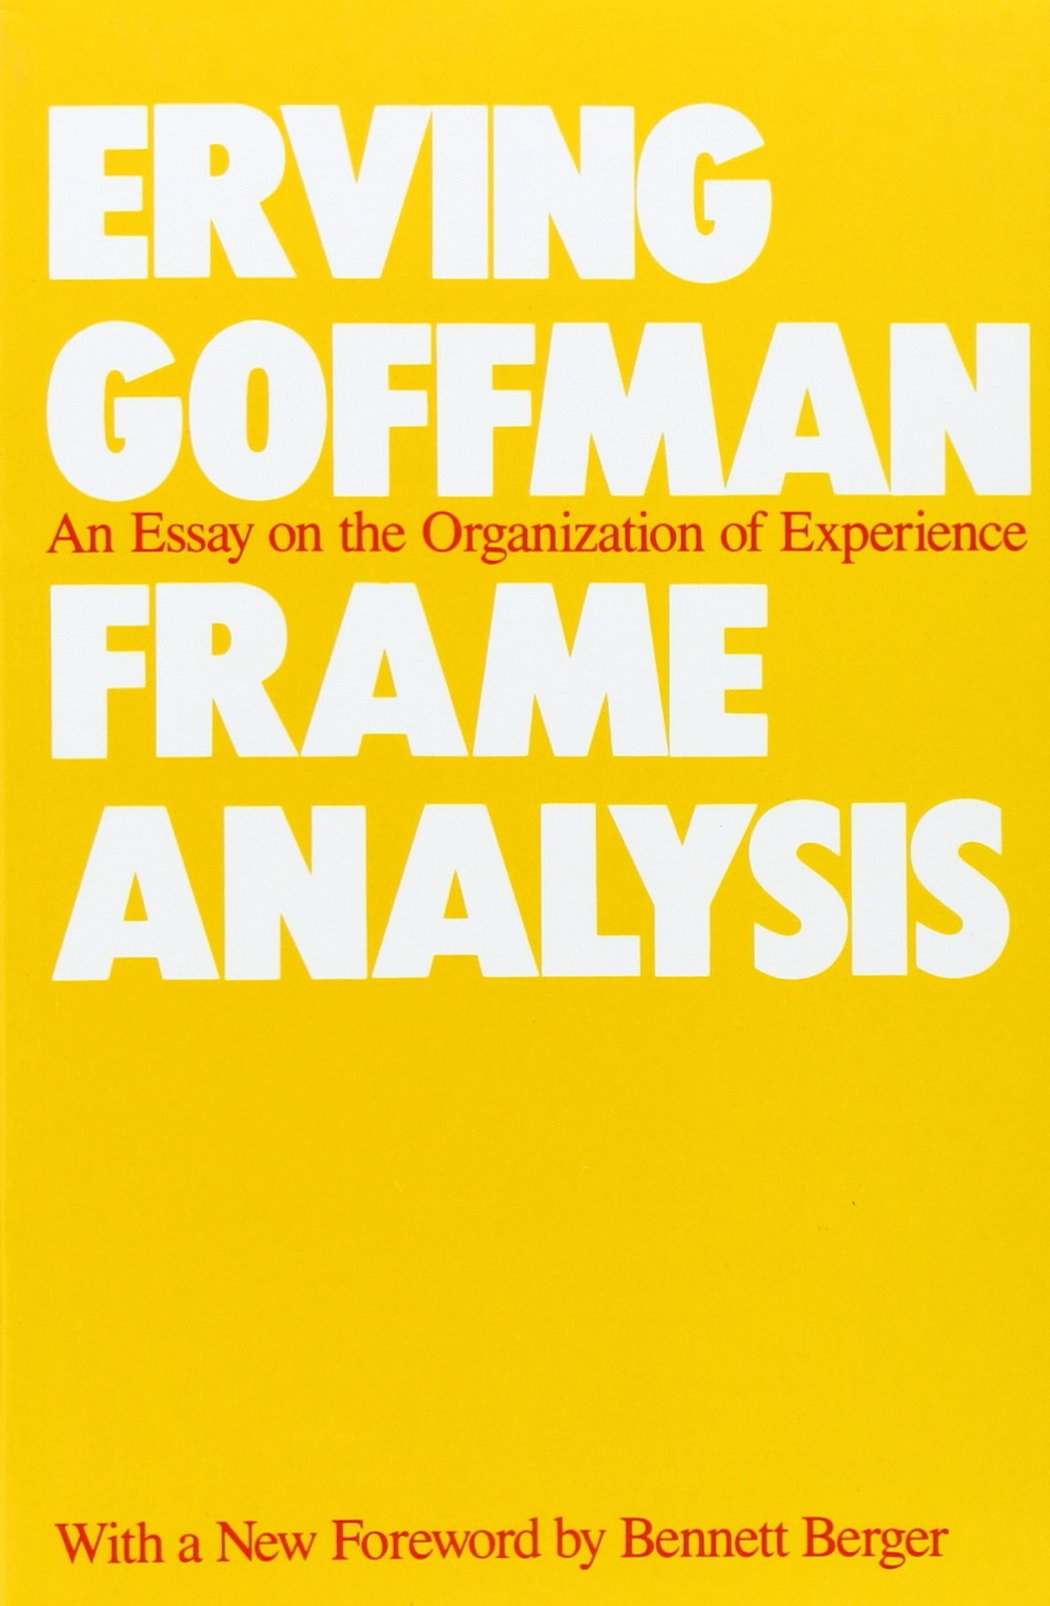 com frame analysis an essay on the organization of com frame analysis an essay on the organization of experience 9780930350918 erving goffman bennett berger books